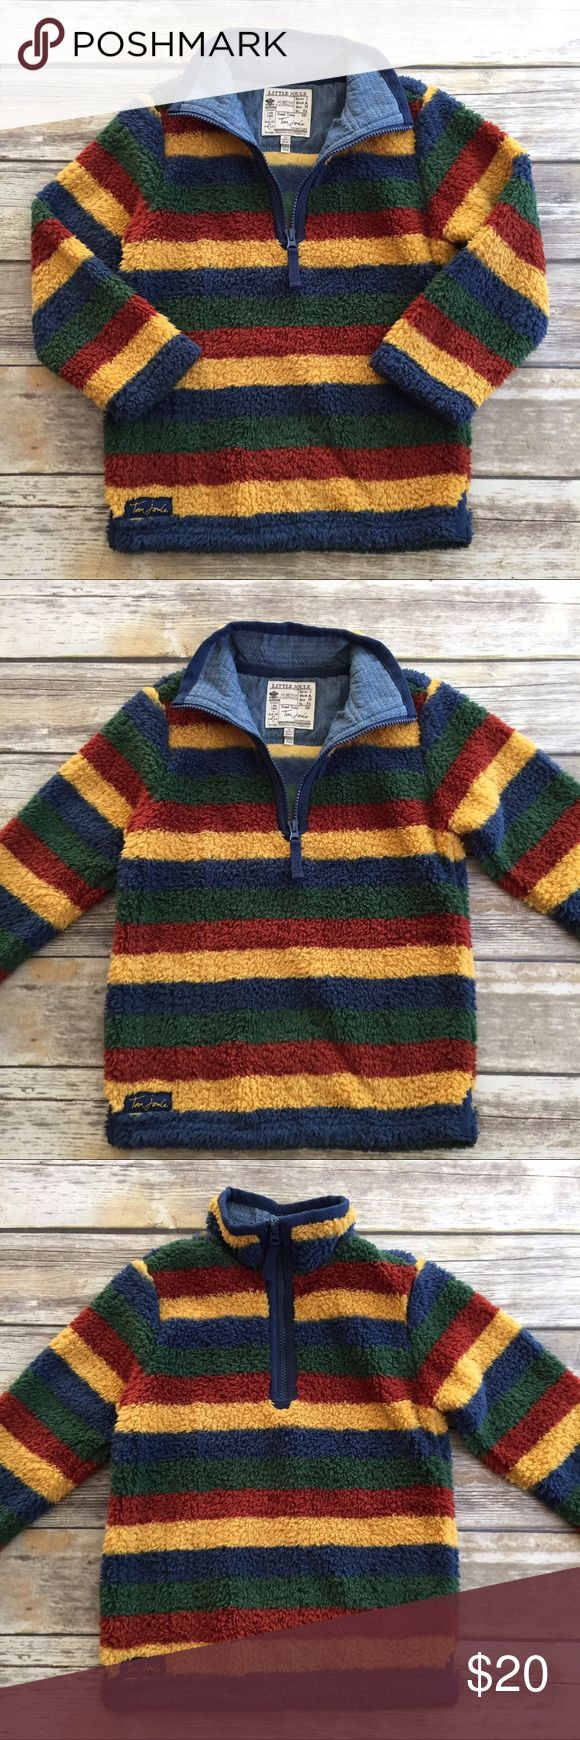 Little Joule Fleece Pullover This is the softest jacket you've ever felt. Zip up neck, stripes in mustard, maroon, green and blue, this jacket is perfect for fall. Did I mention soft? Joules Shirts & Tops Sweatshirts & Hoodies